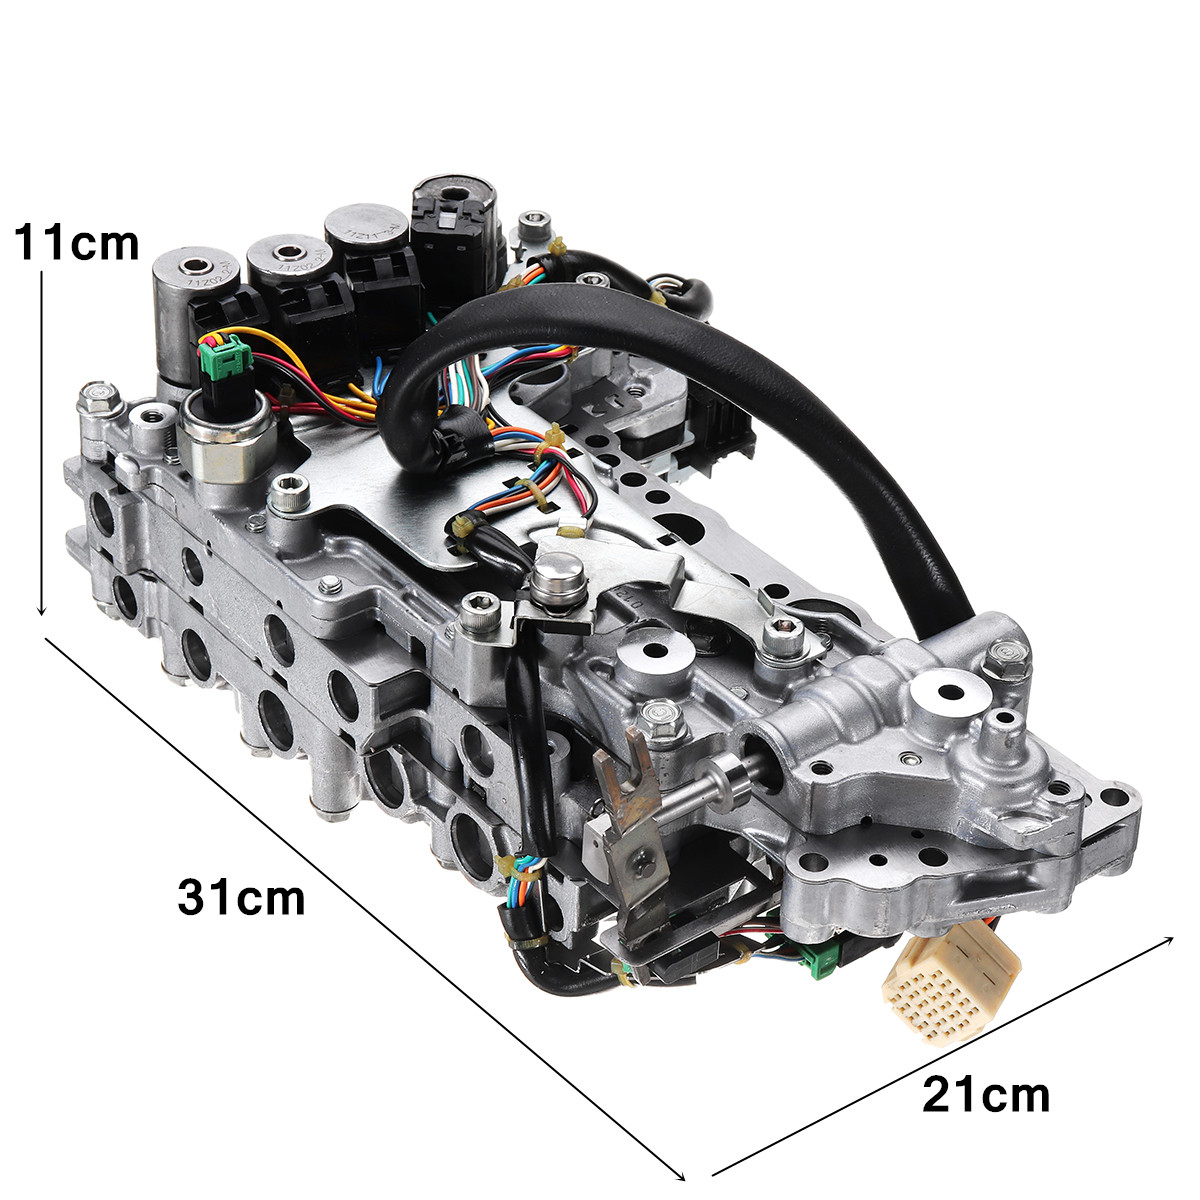 US $201 66 |CVT JF010E RE0F09A / B Transmission Valve Body for Nissan  Murano Maxima Altima with Solenoids 31x21x11cm Iron + Aluminum-in Automatic